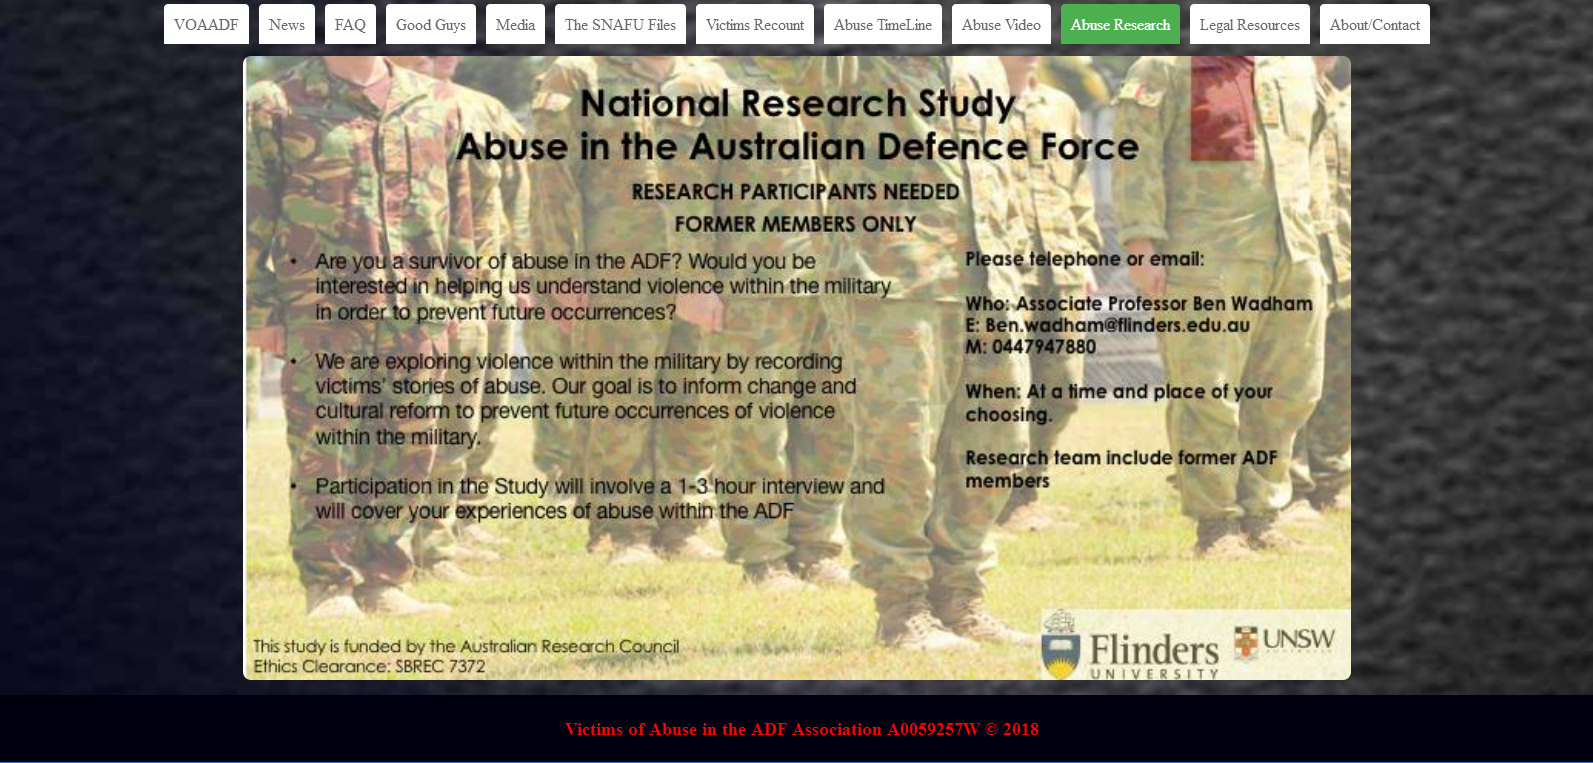 Abuse in the ADF - Historical Timeline